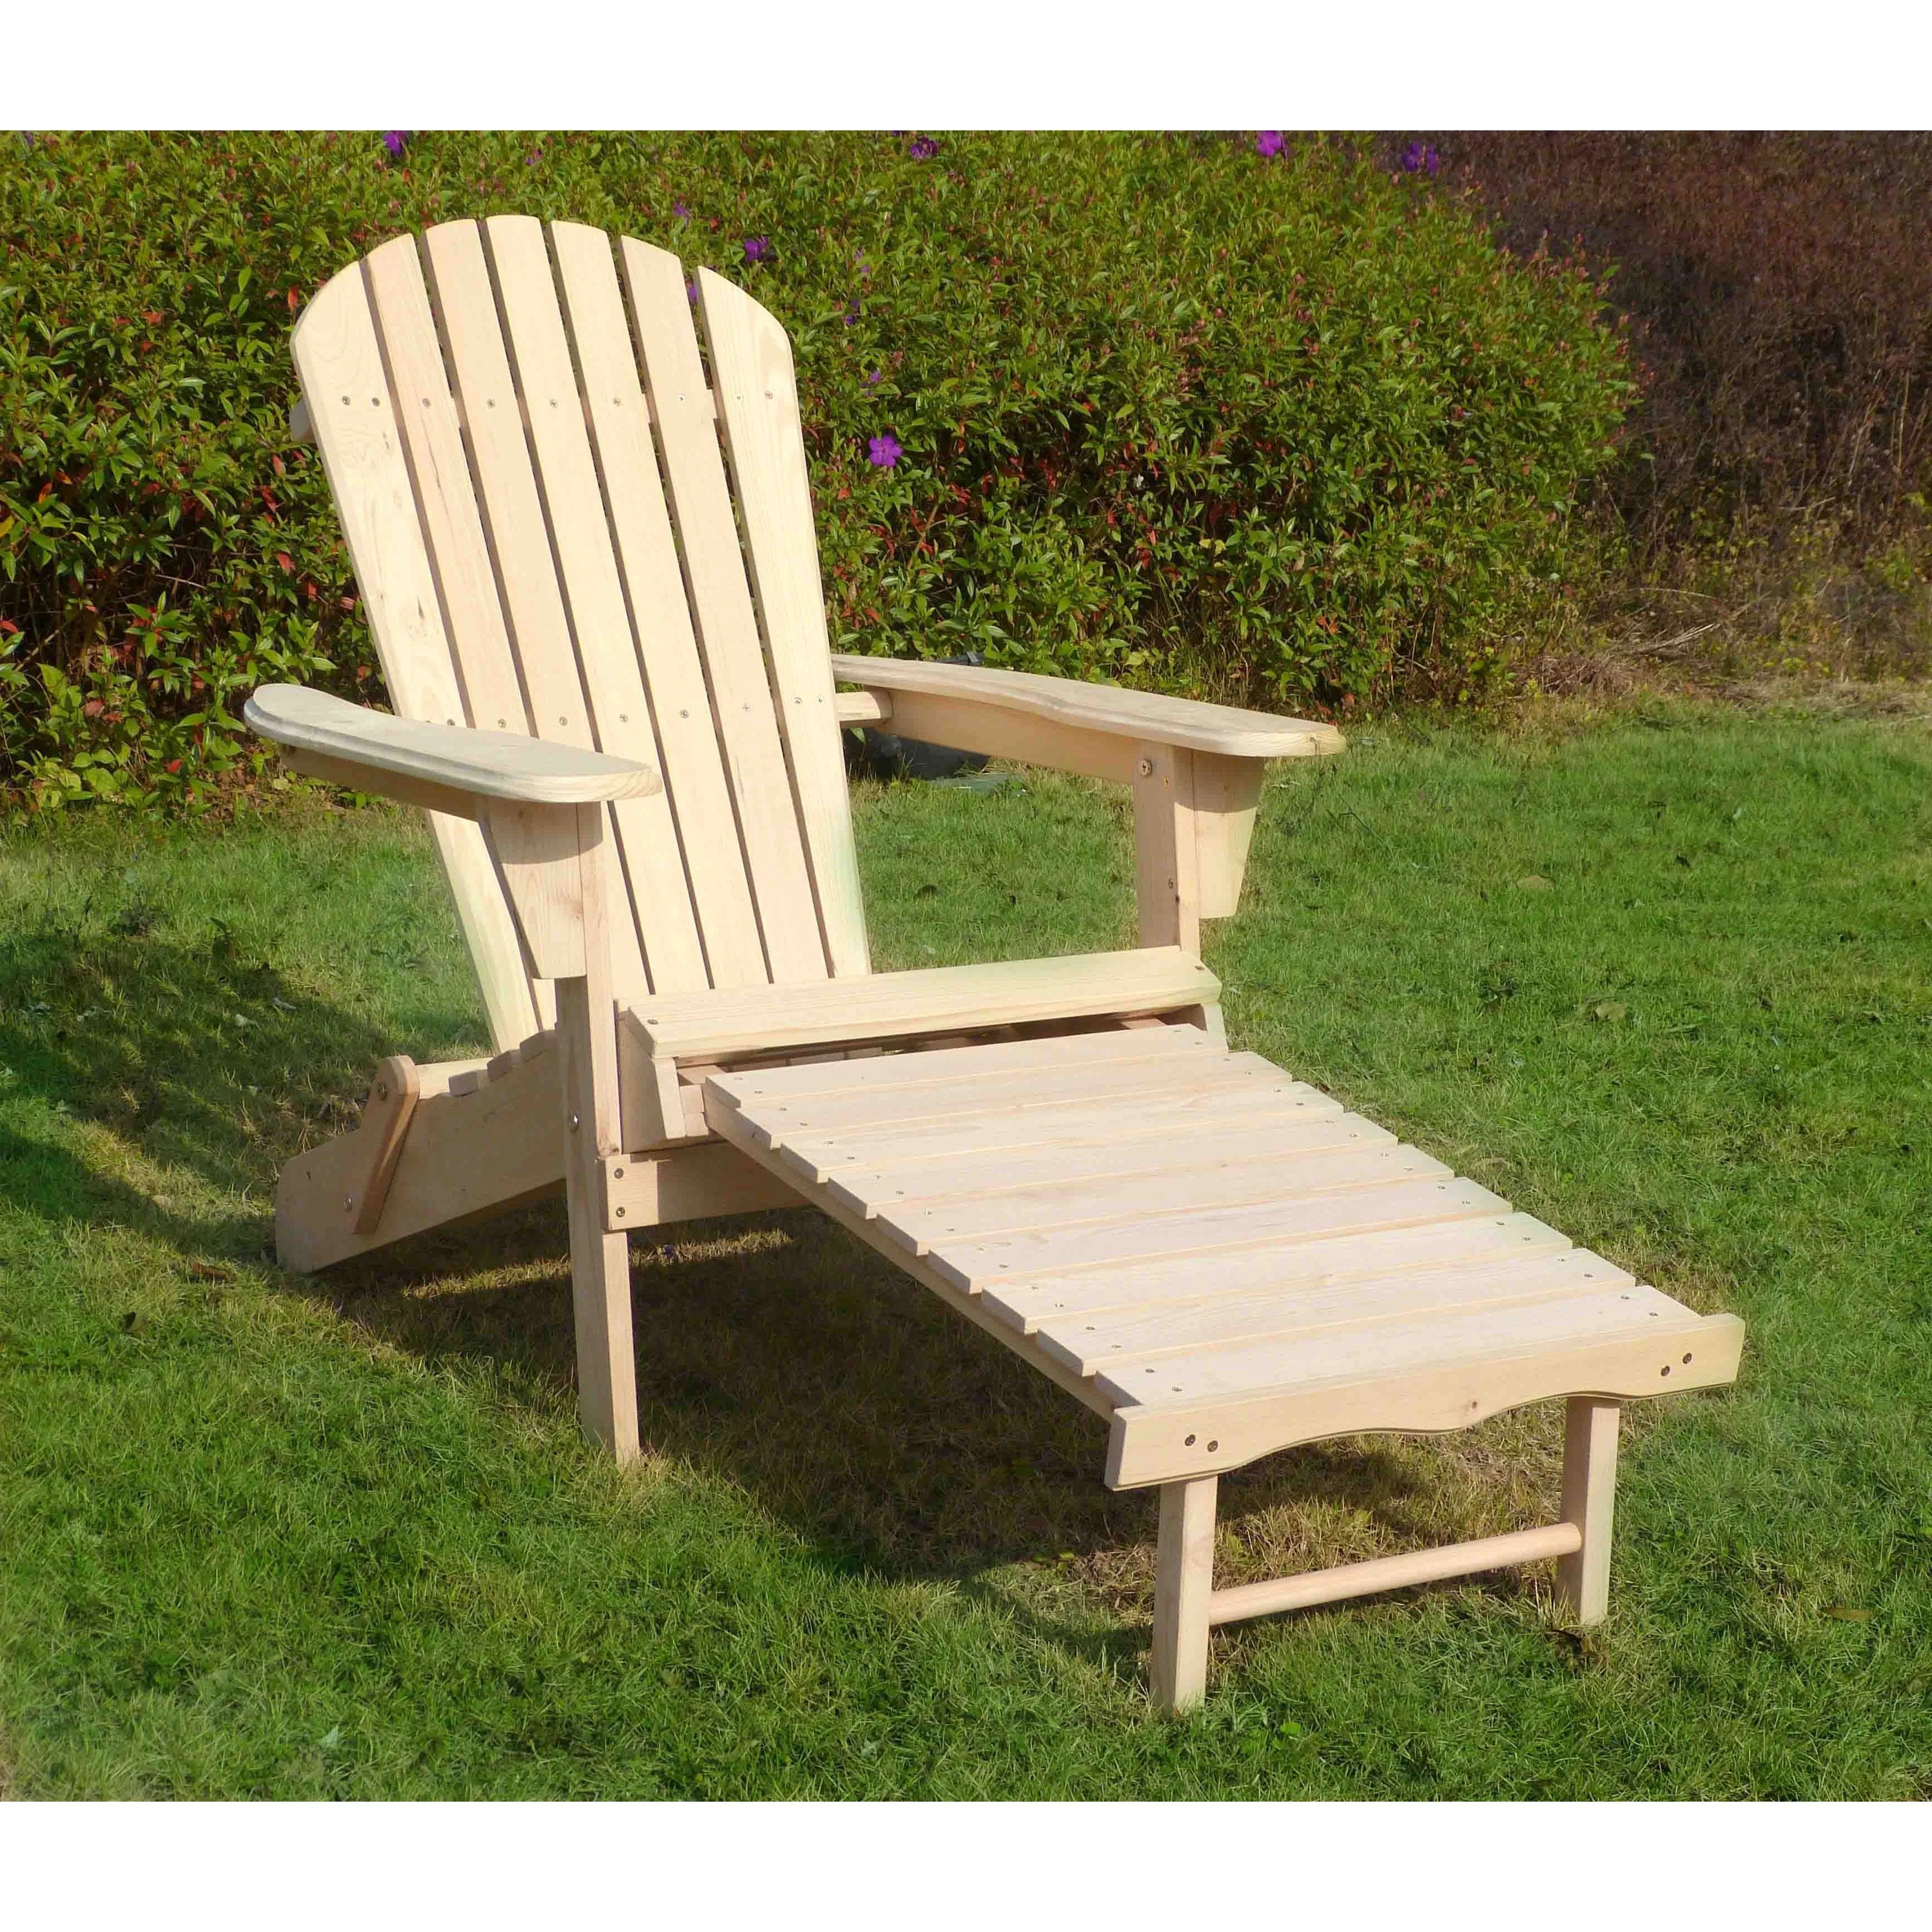 adirondack chairs kits party for rent shop merry products chair kit with pullout ottoman free shipping on orders over 45 overstock com 14595228